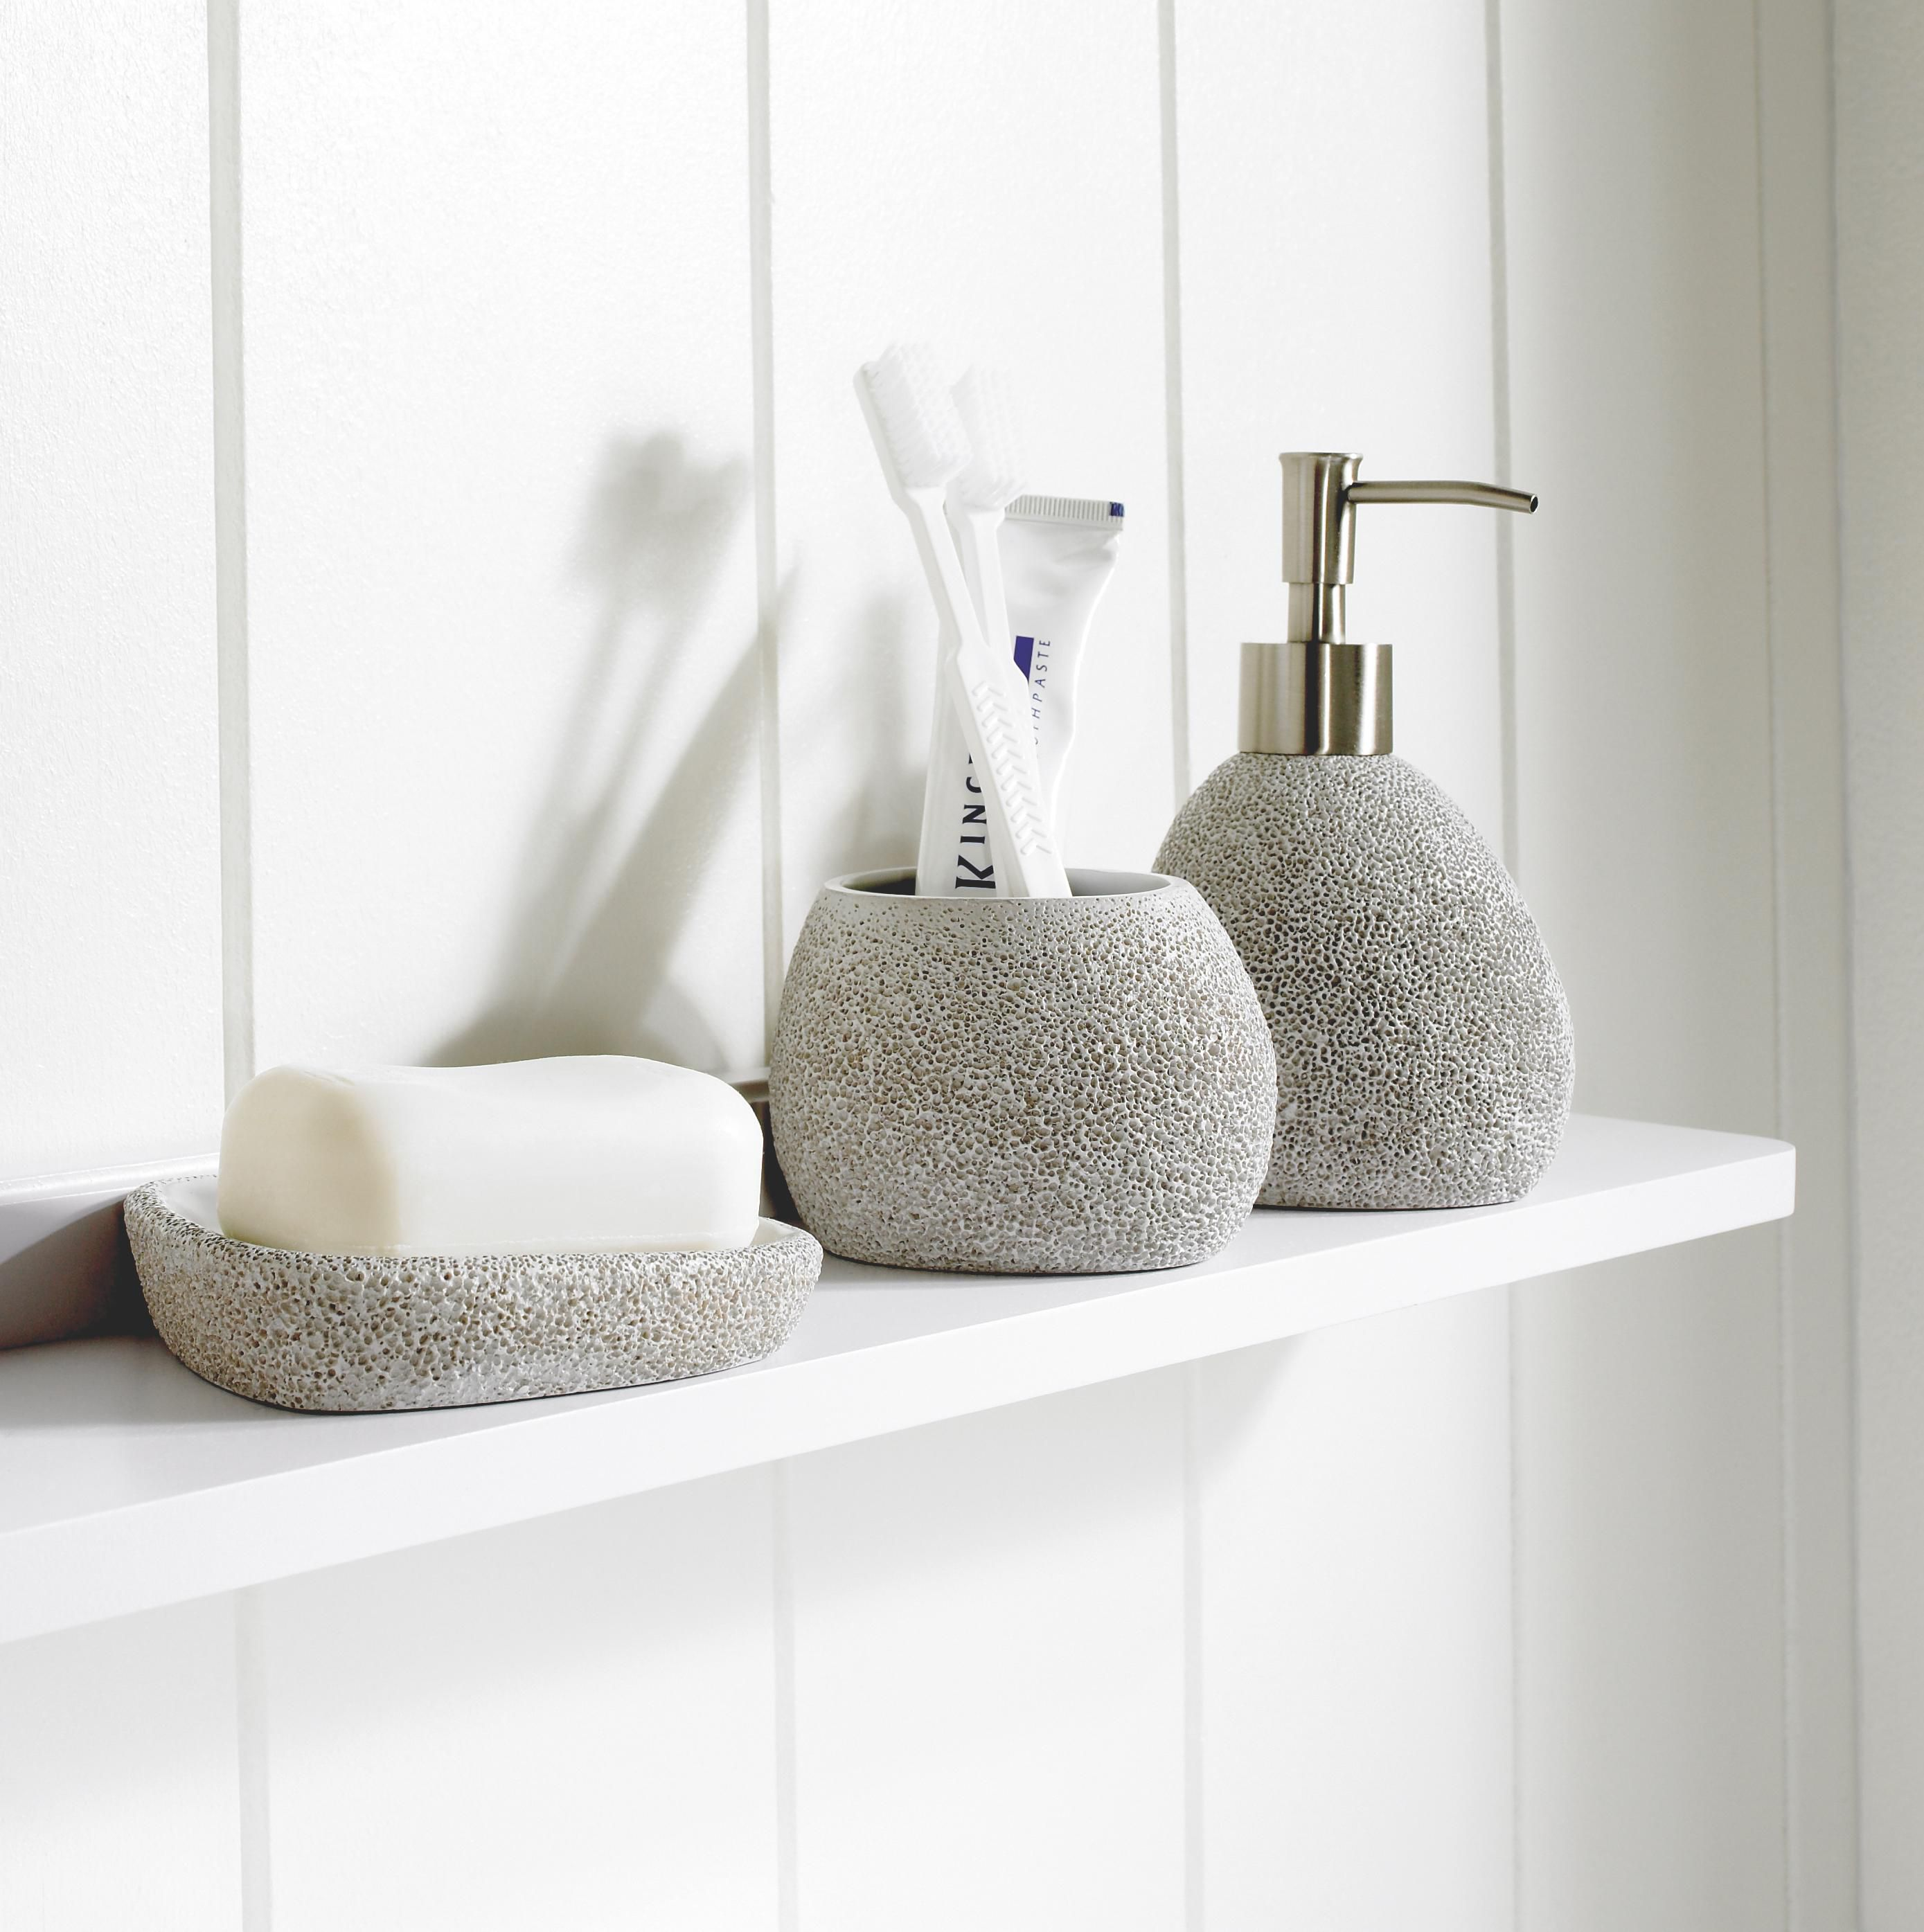 Charmant Toothbrush Holders